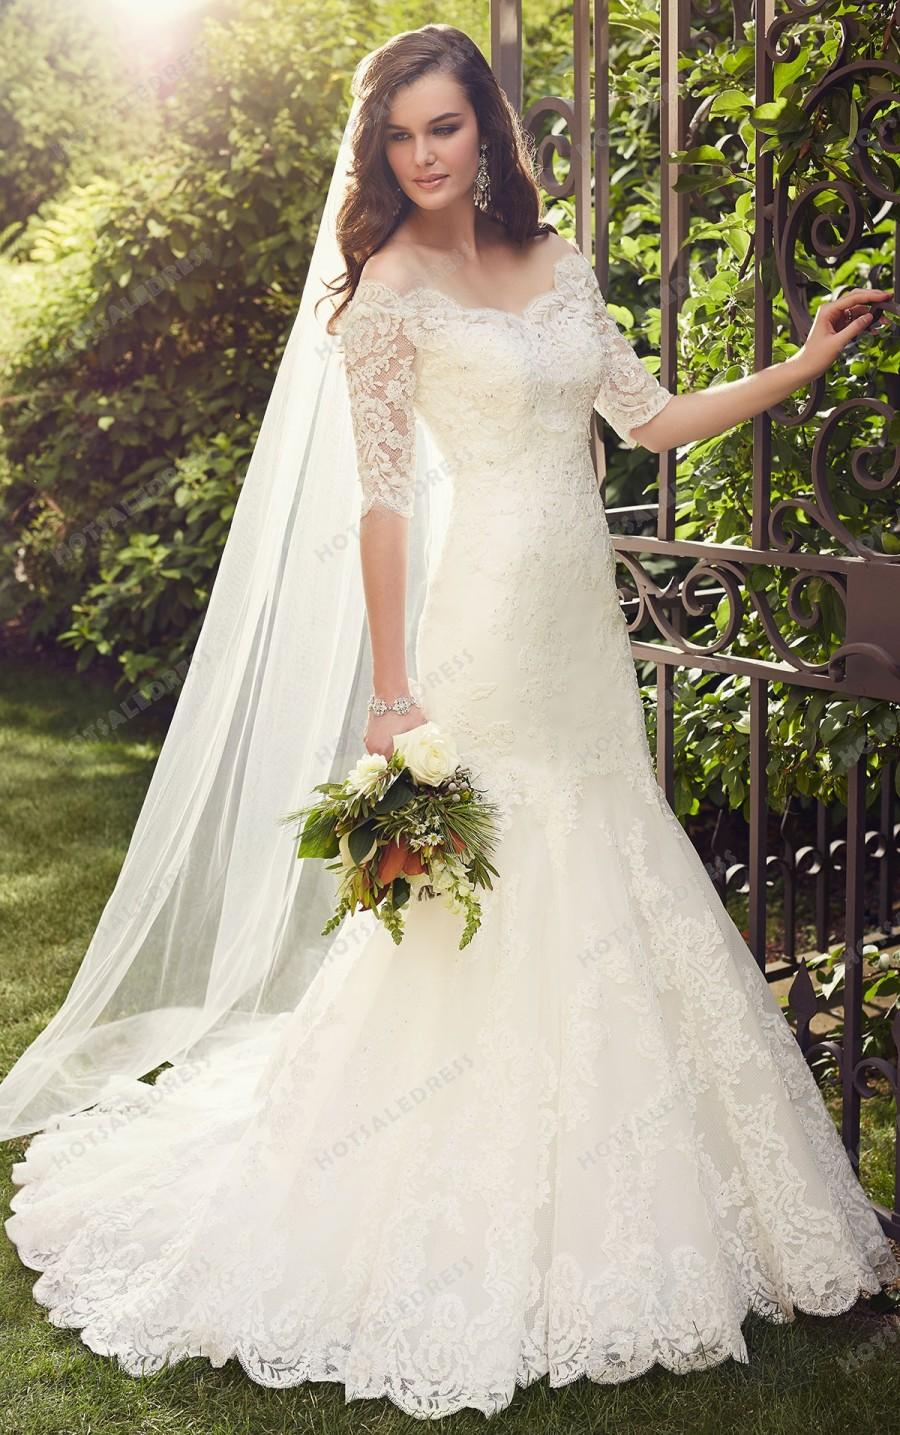 Boda - Essense of Australia Lace Wedding Dresses With Sleeves Style D1748